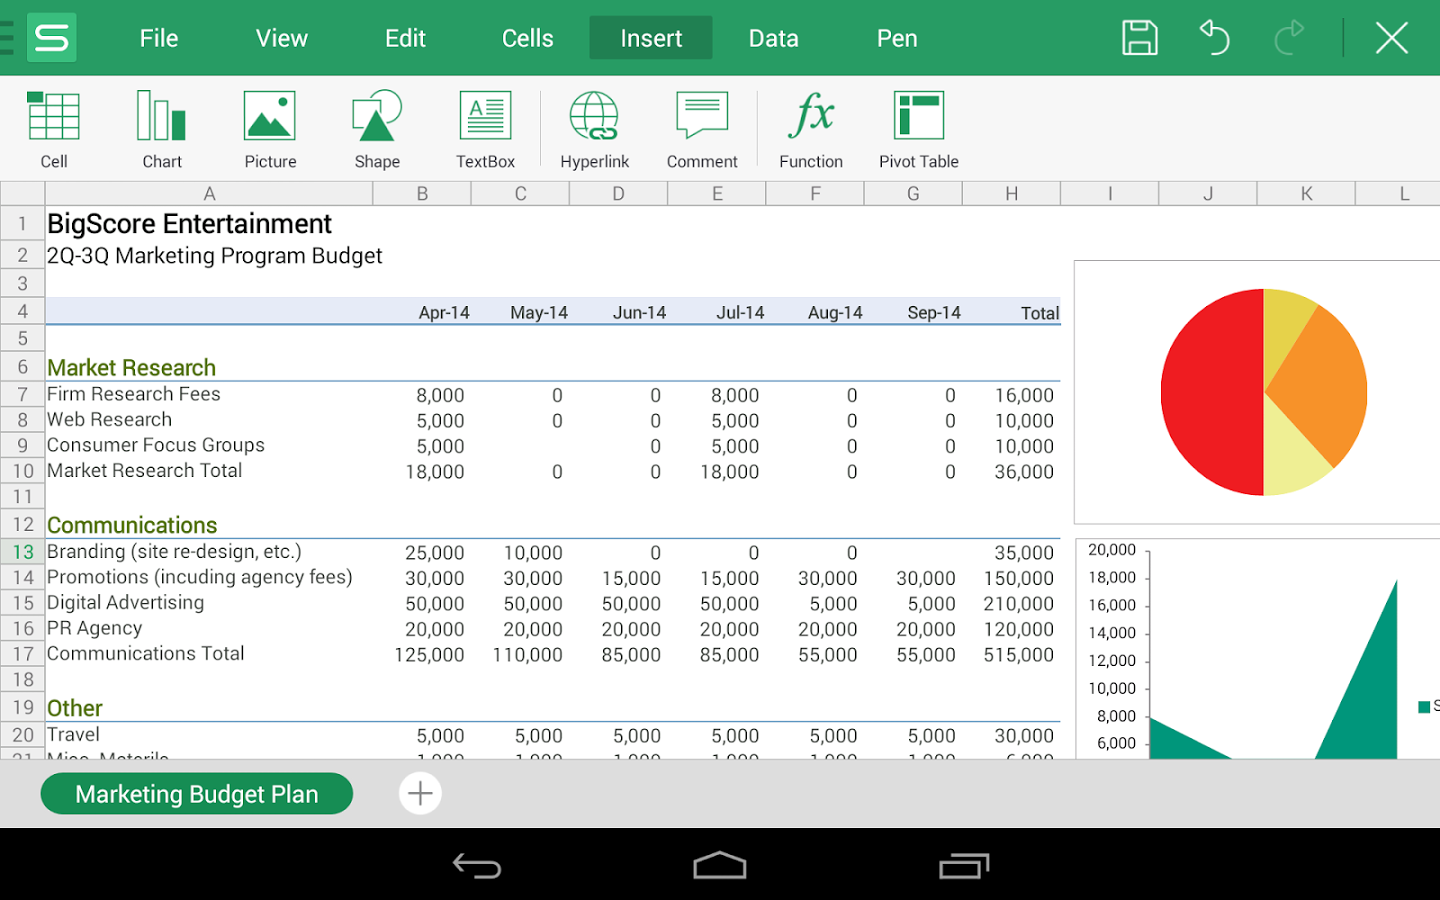 excel spreadsheet free download windows 7